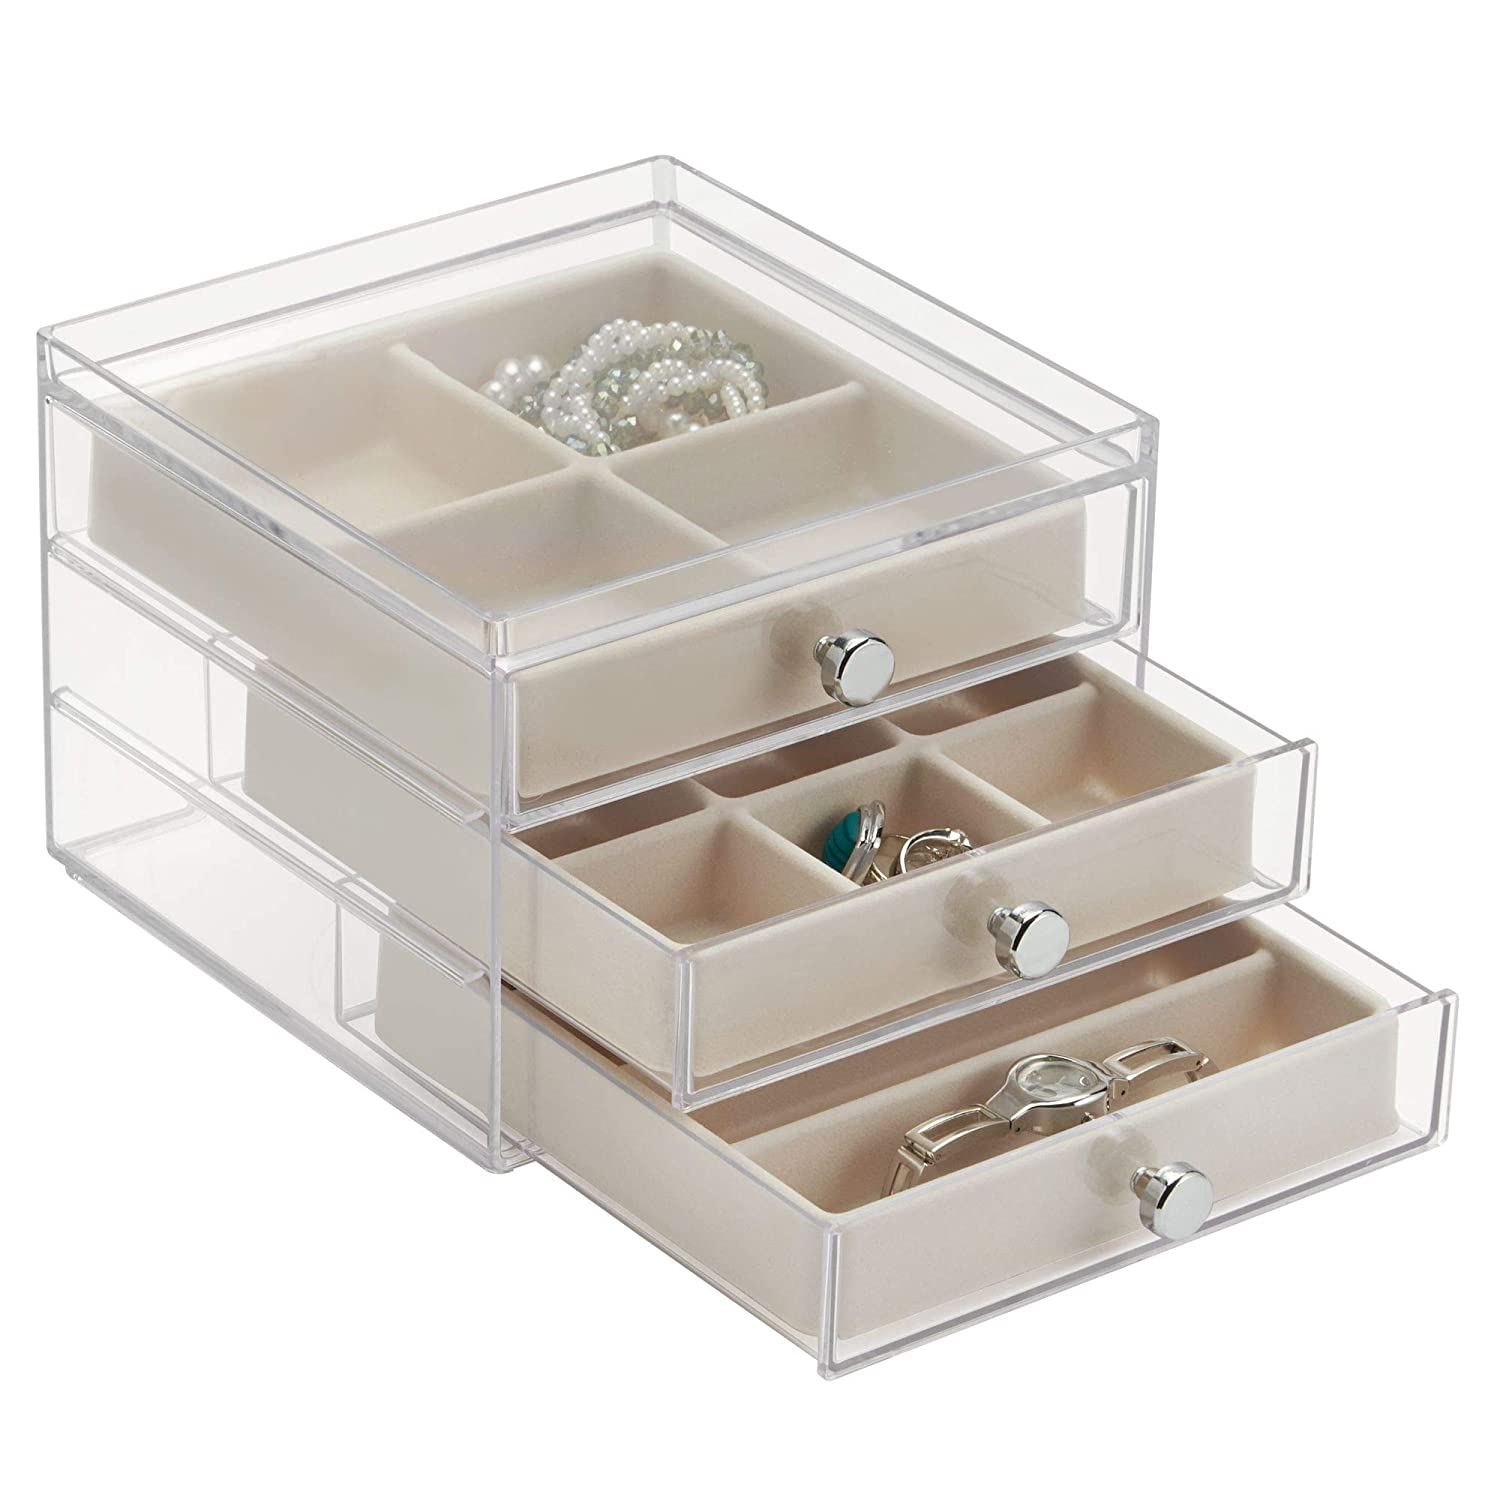 "iDesign Plastic 3 Jewelry Box, Compact Storage Organization Drawers Set for Cosmetics, Hair Care, Bathroom, Dorm, Desk, Countertop, Office, 6.5"" x 7"" x 5"", Clear and Ivory White"